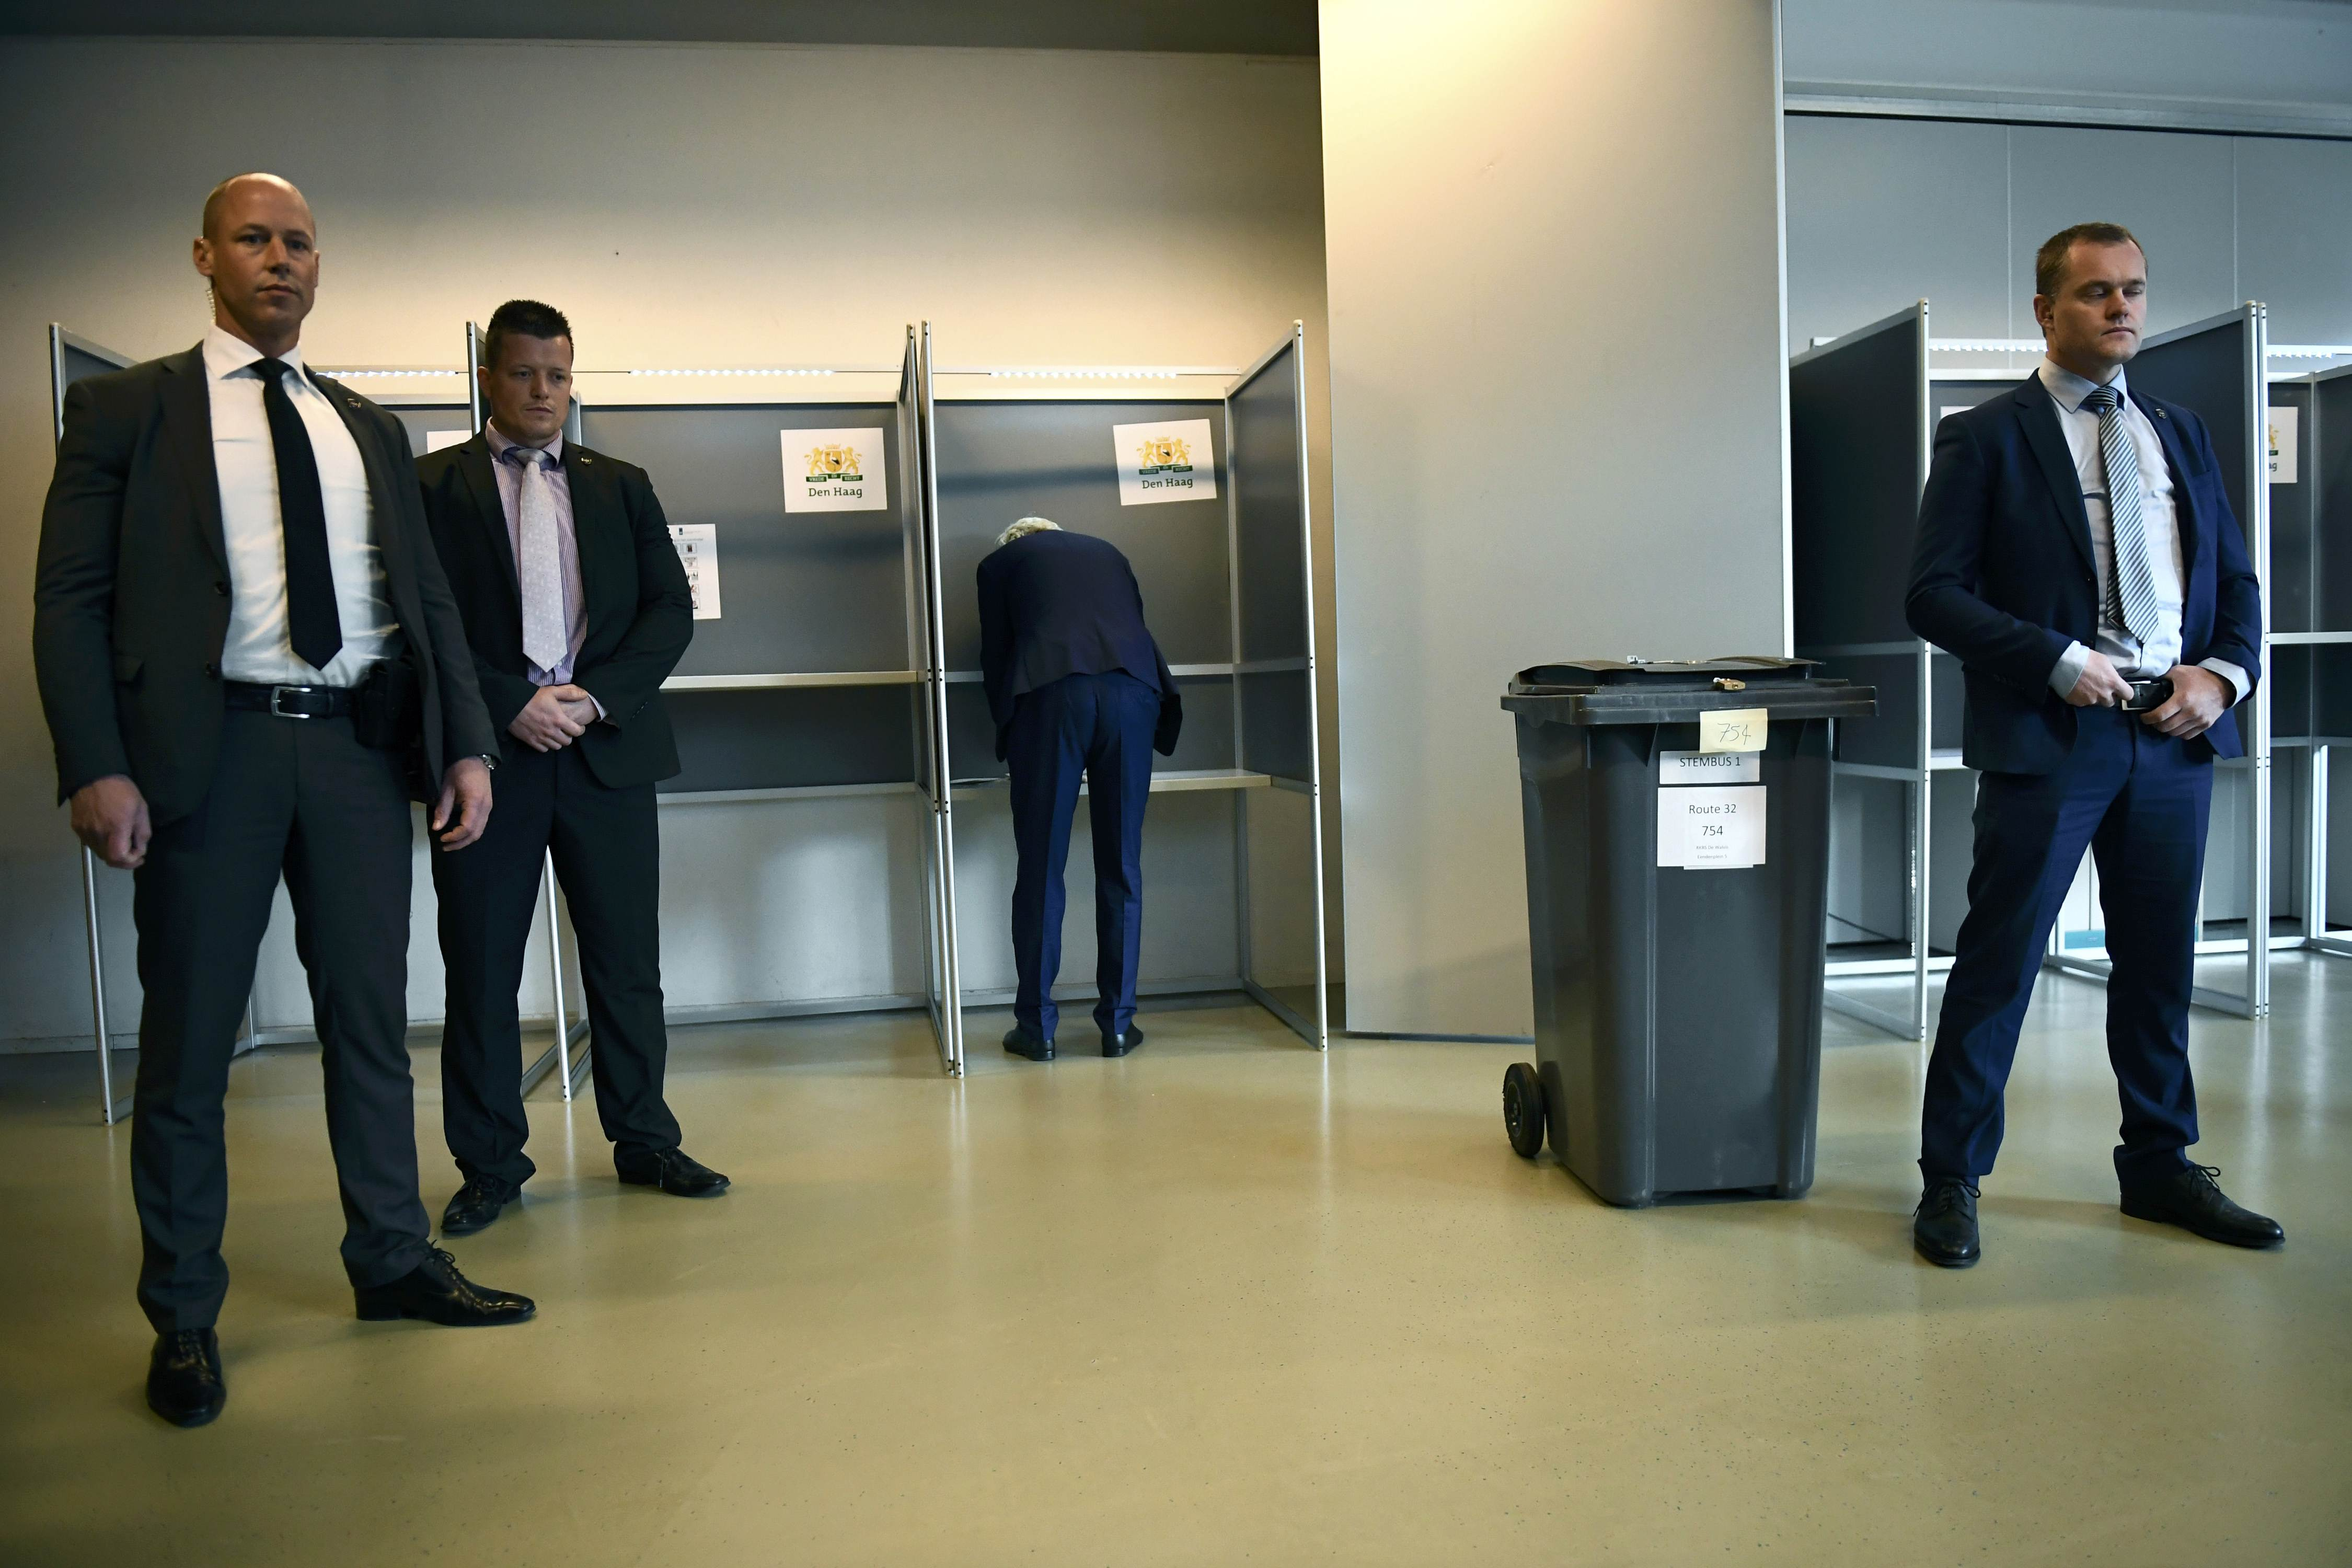 Dutch far-right politician Geert Wilders of the PVV party surrounded by security as he votes in the general election in The Hague, Netherlands, March 15, 2017. REUTERS/Dylan Martinez